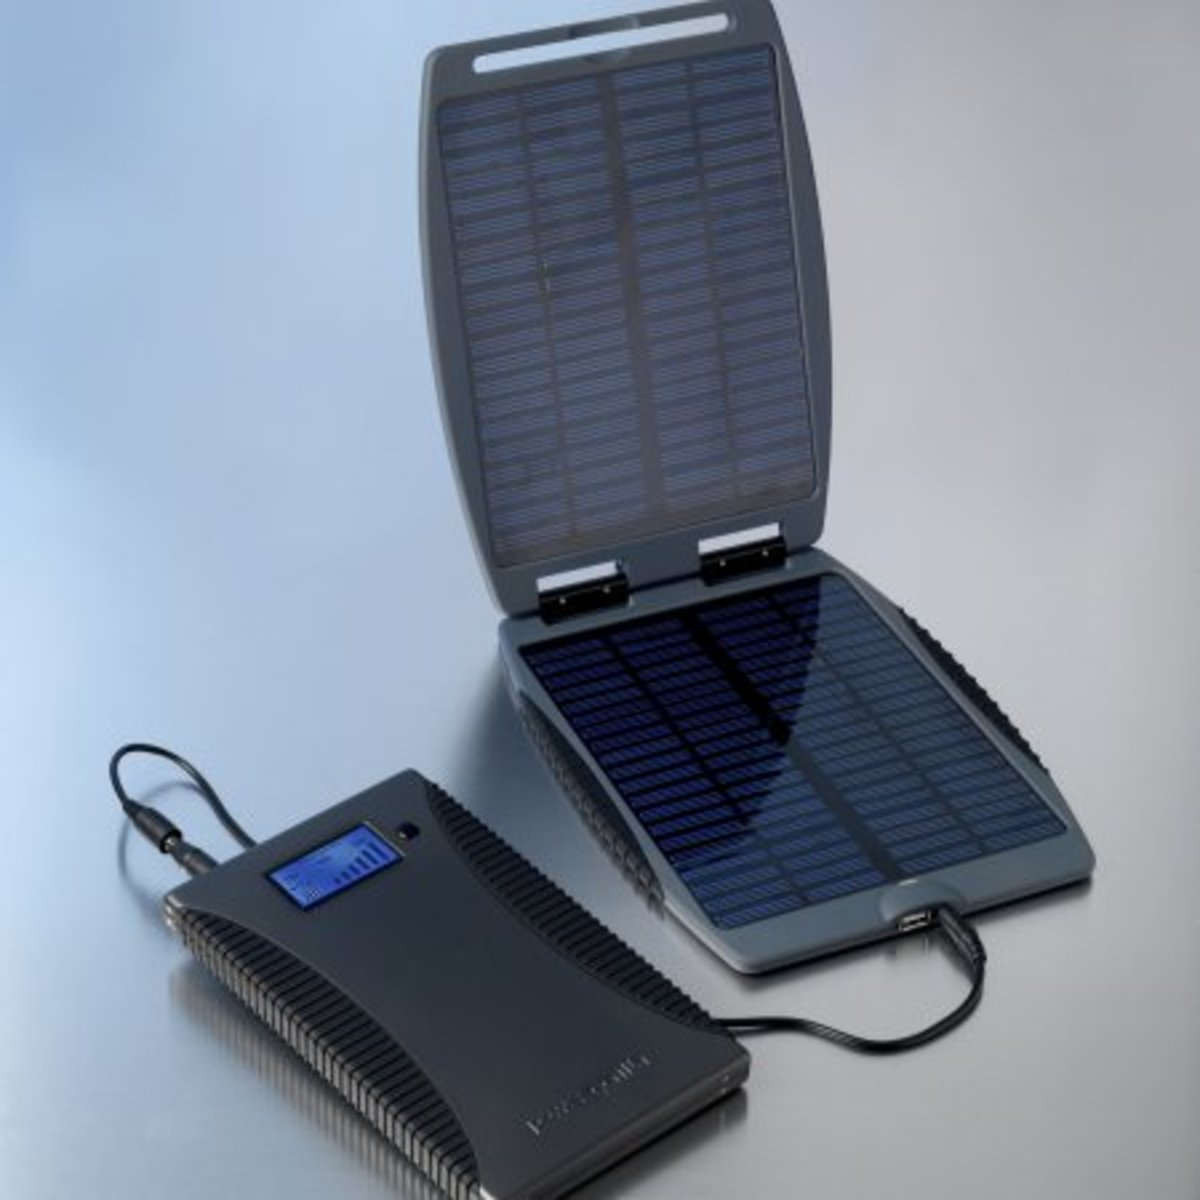 Solar Gorilla is another easy to use solar power charger